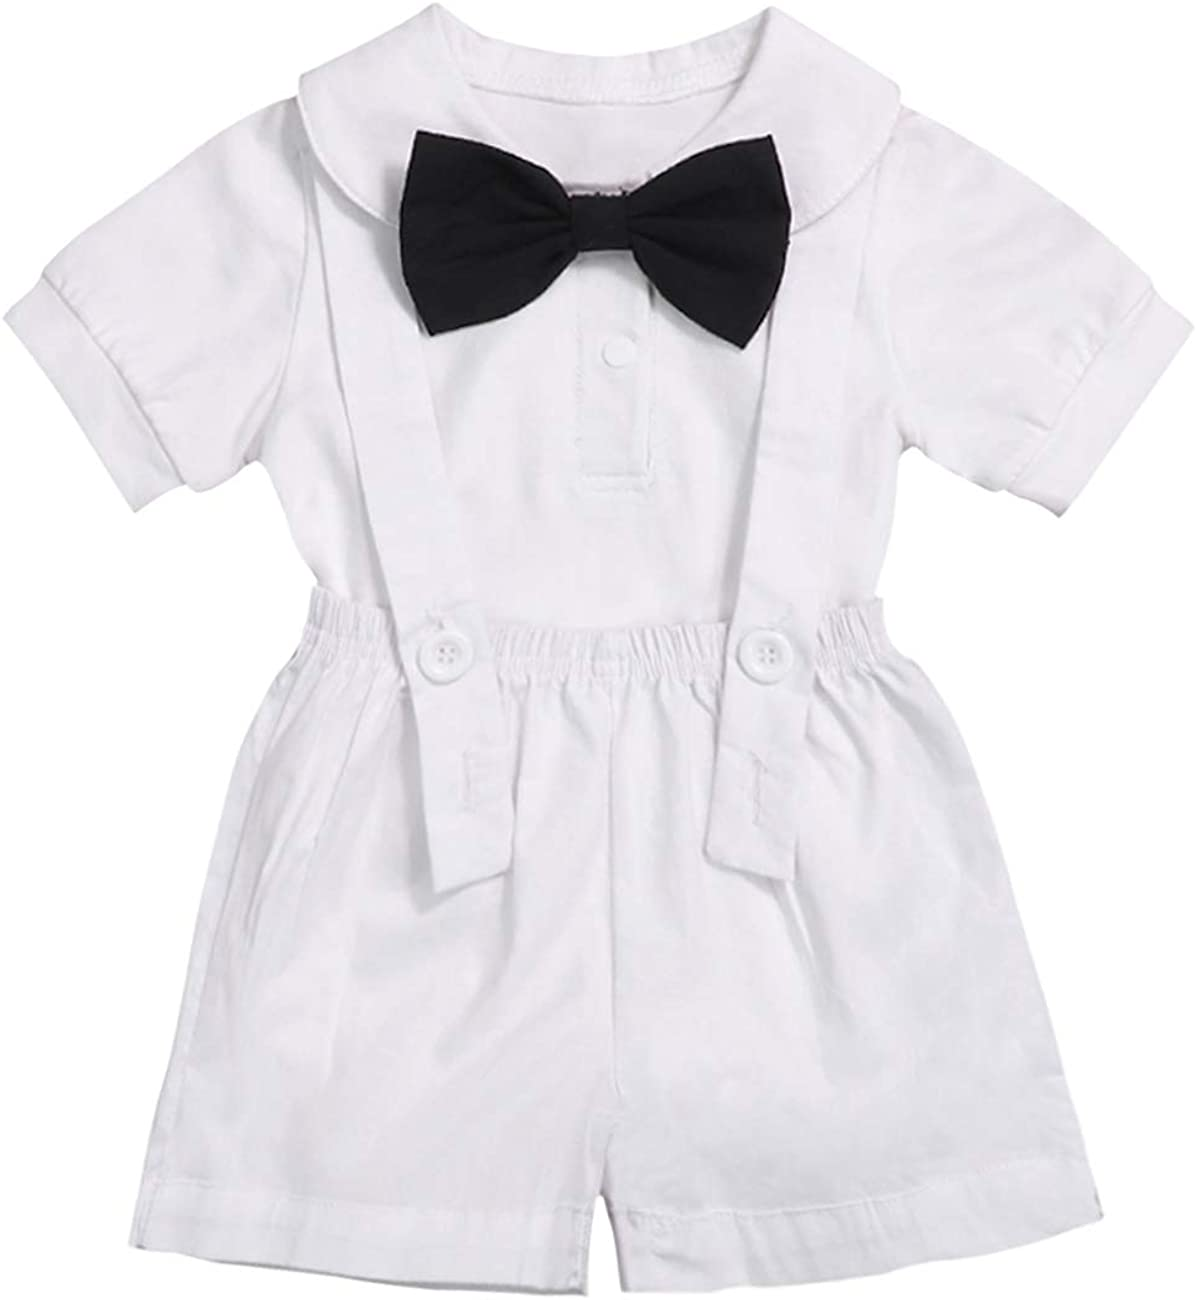 Baby Boy Gentleman Outfits Suits Infant Short Sleeve Romper Bib Pants Bow Tie Overalls Clothing Set